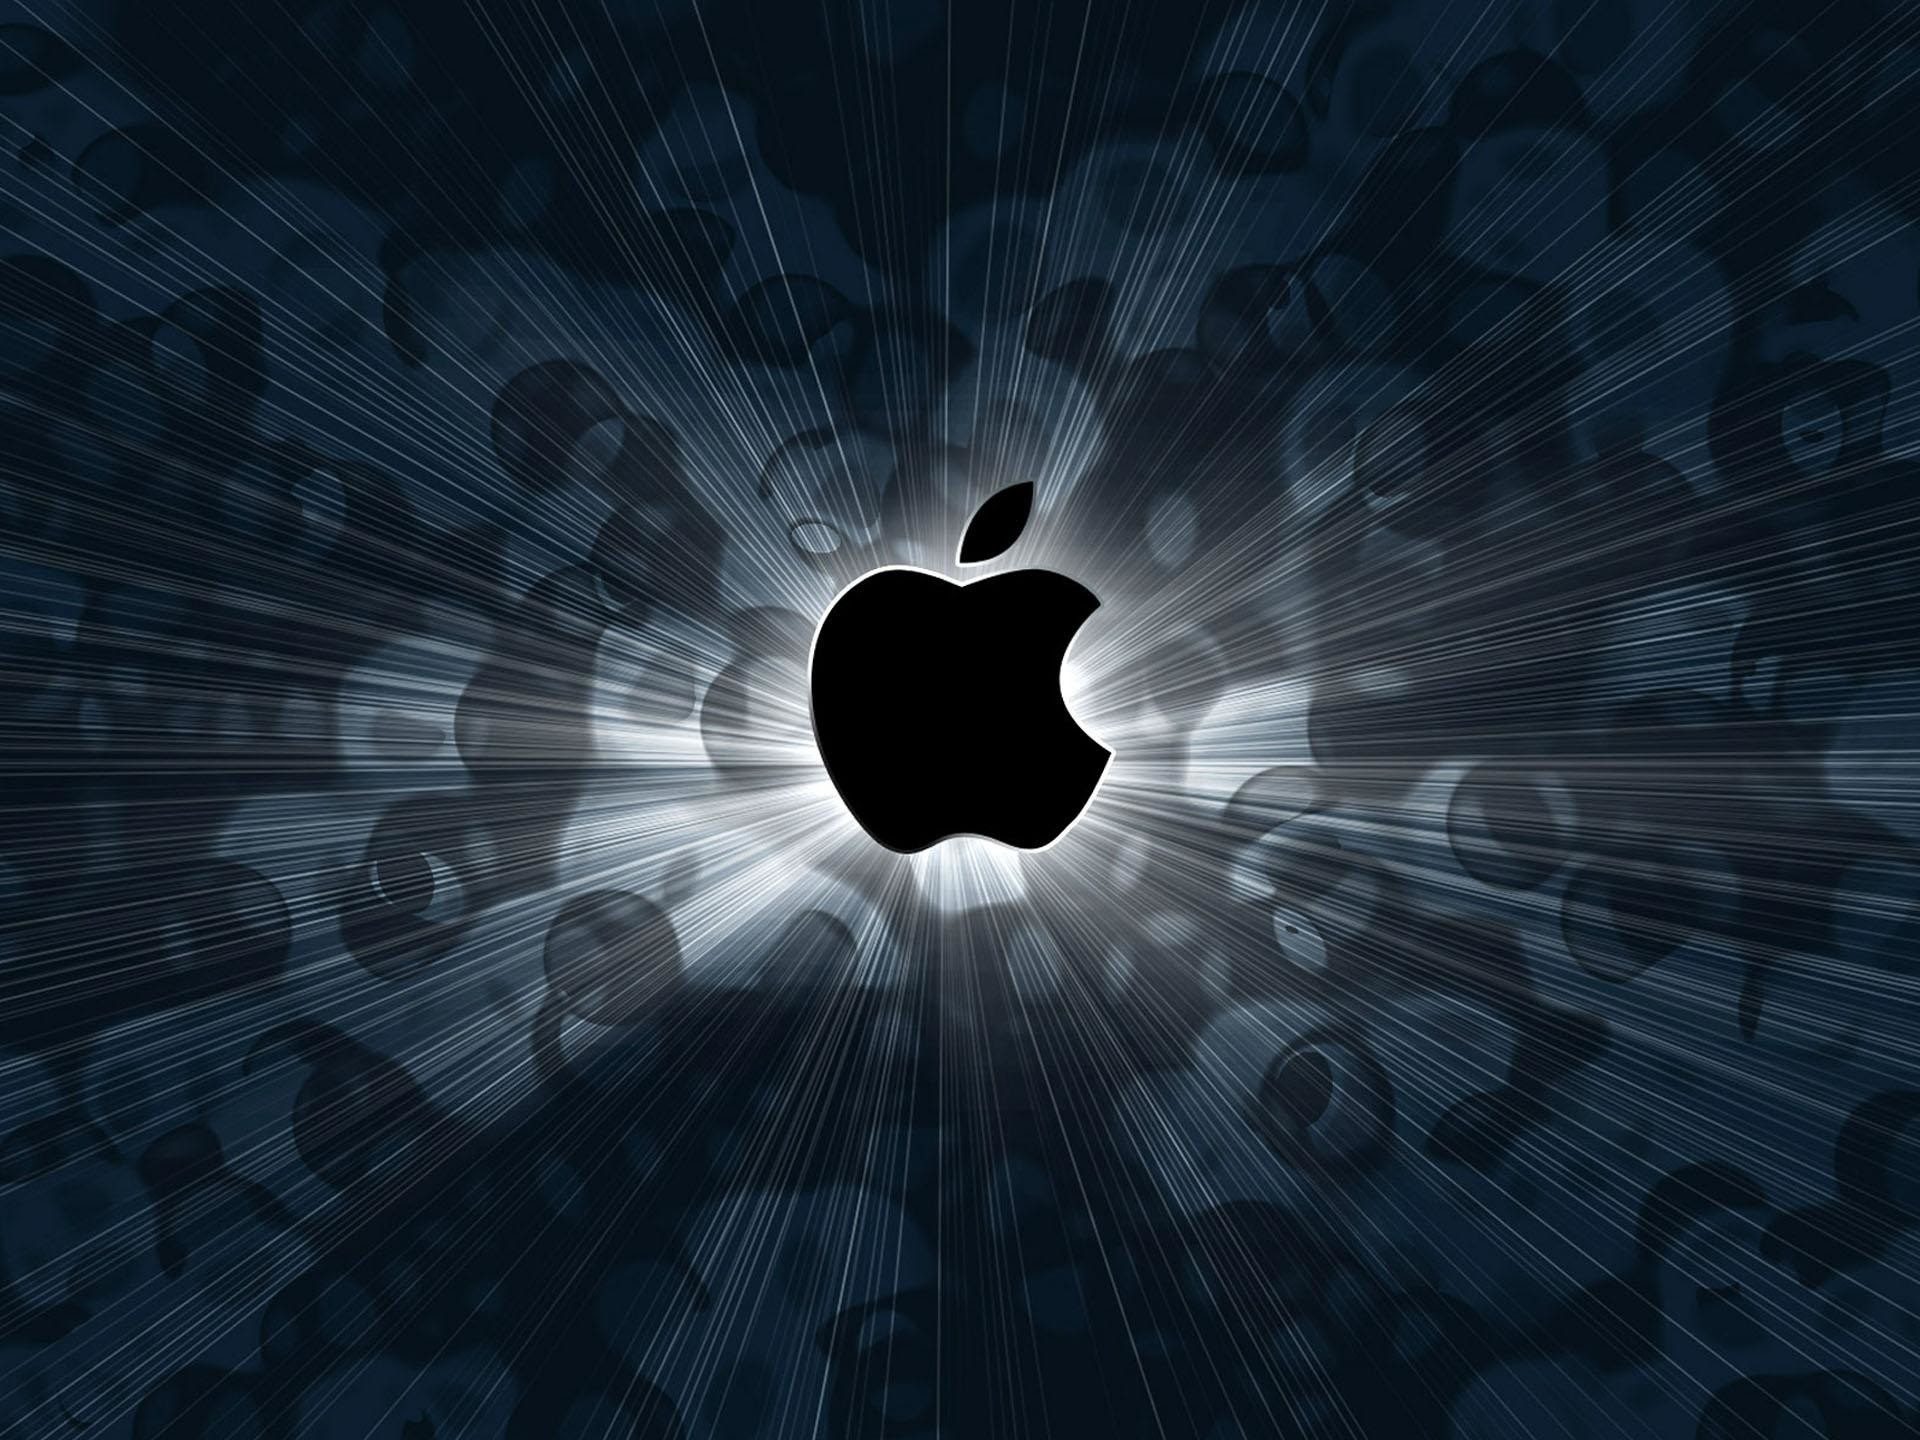 Apple Logo HD Wallpaper 78+ images